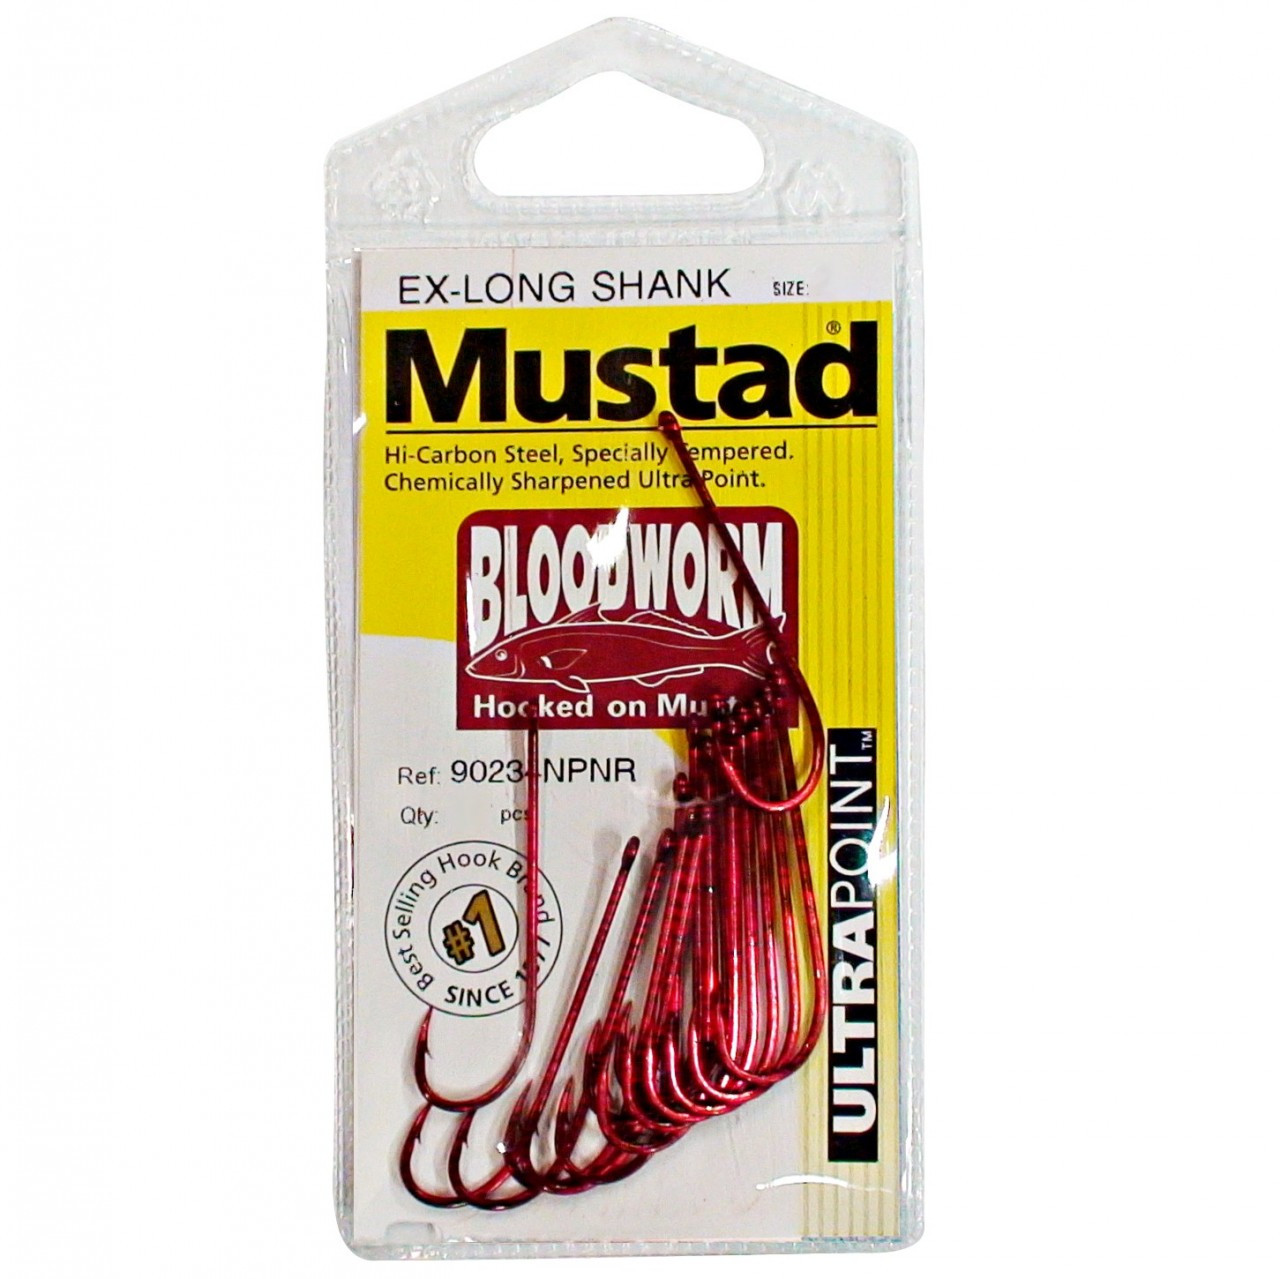 Image of Mustad Bloodworm Long Shank Hooks Single Pack